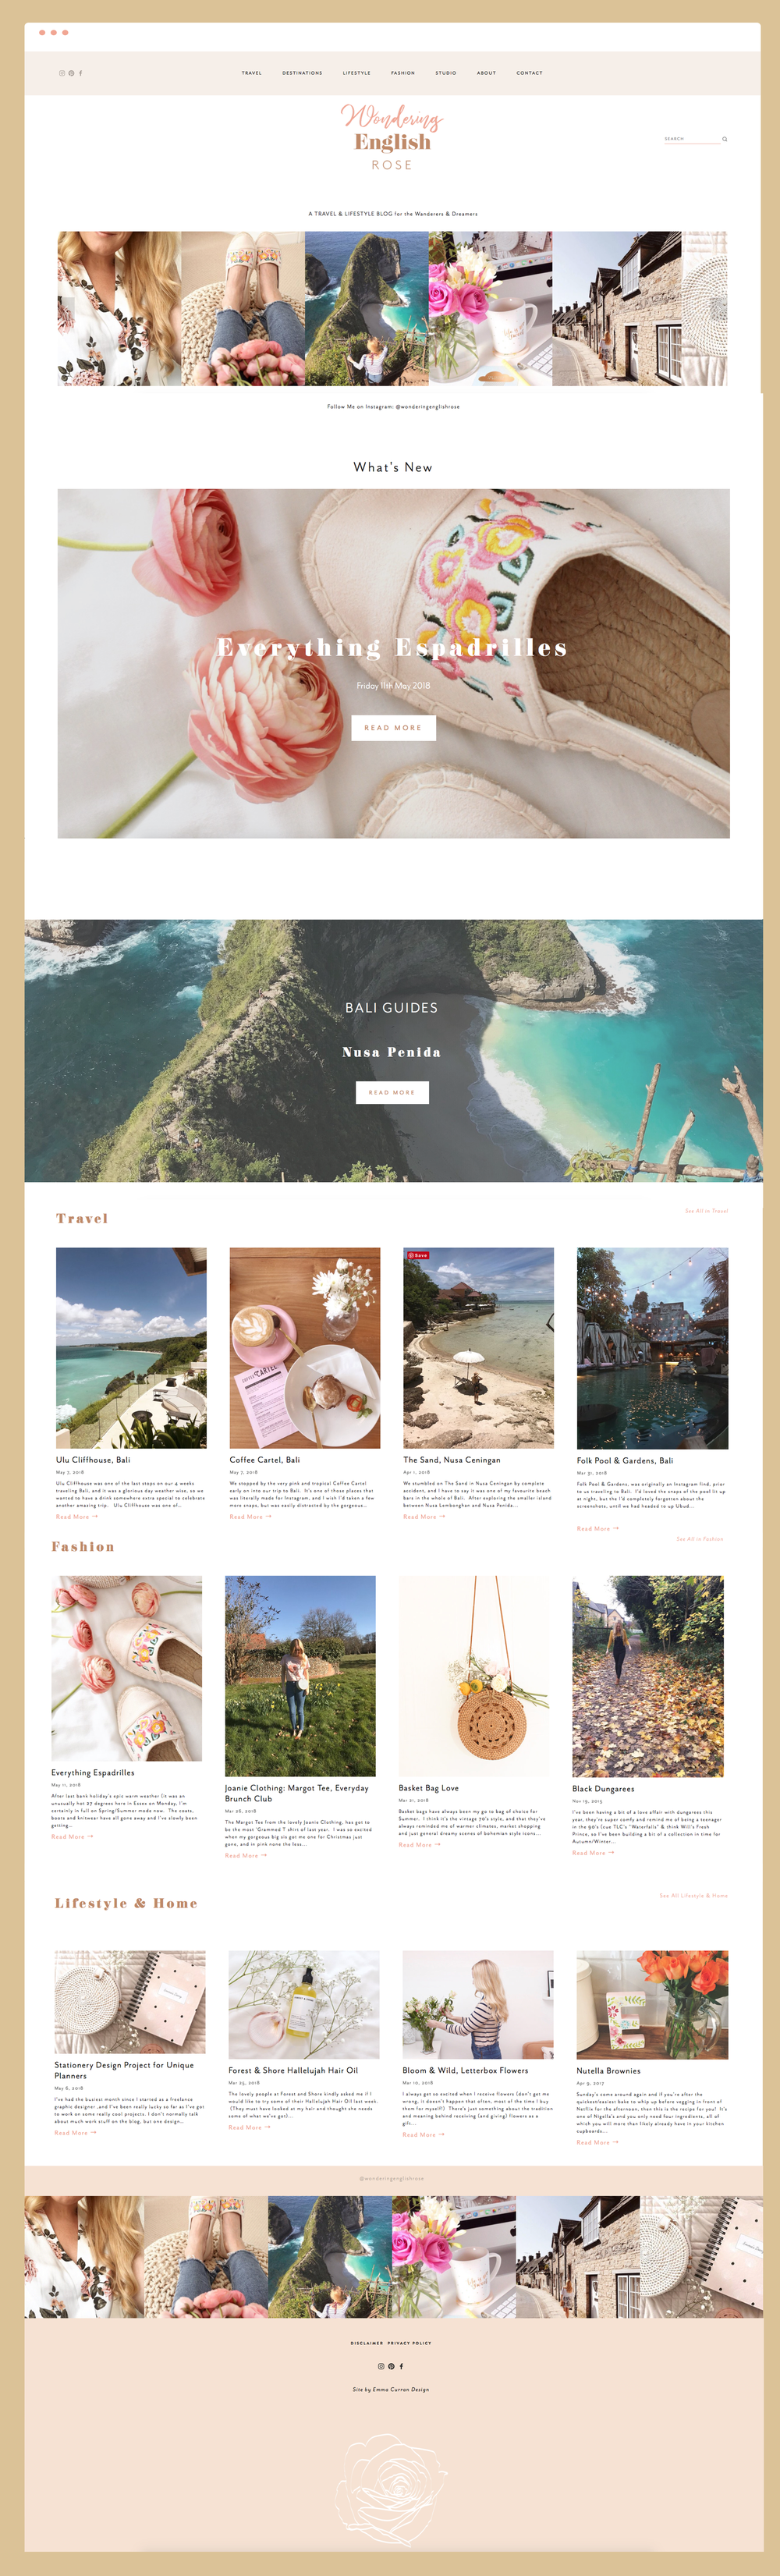 WER-Flat-Browser-Mock-Up-Full-Site-Portfolio.png